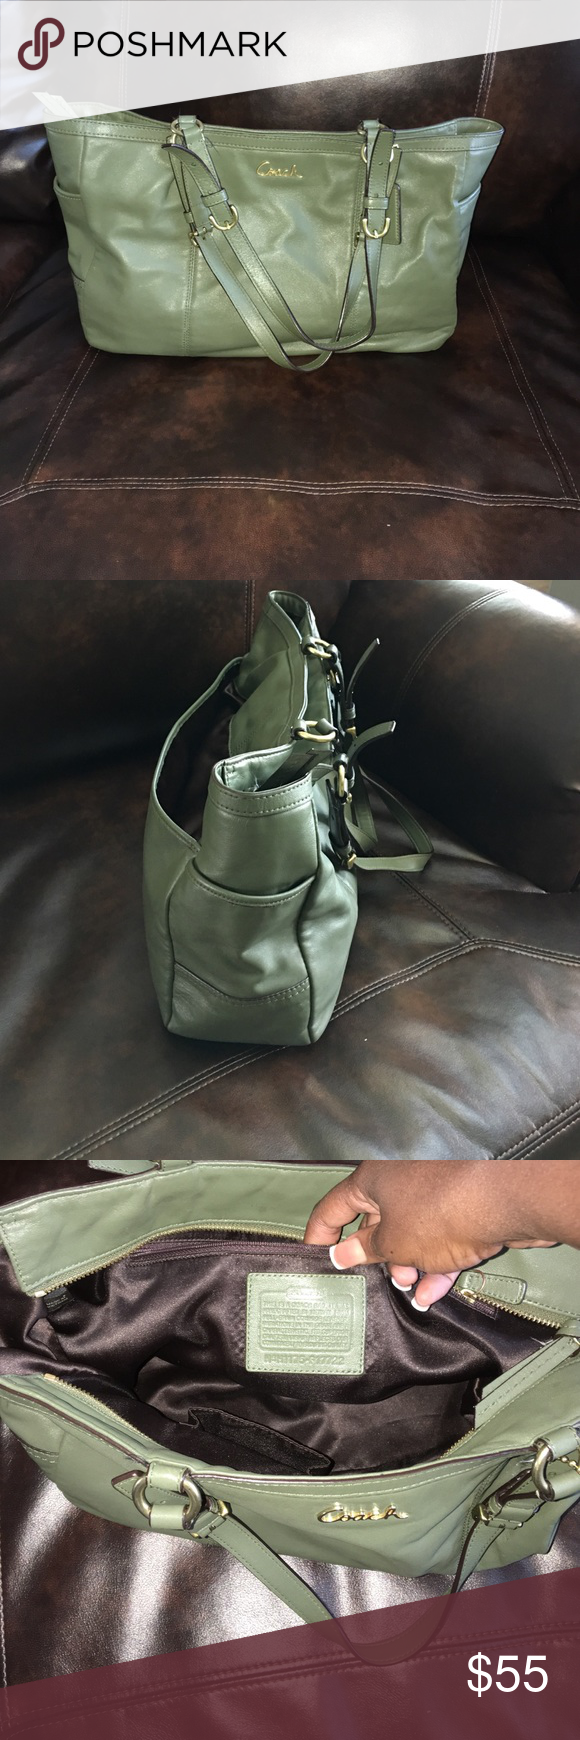 Coach bag Dark green, has side pockets, inside is very clean No Stains, gold details, could even work as a diaper bag. Coach Bags Shoulder Bags